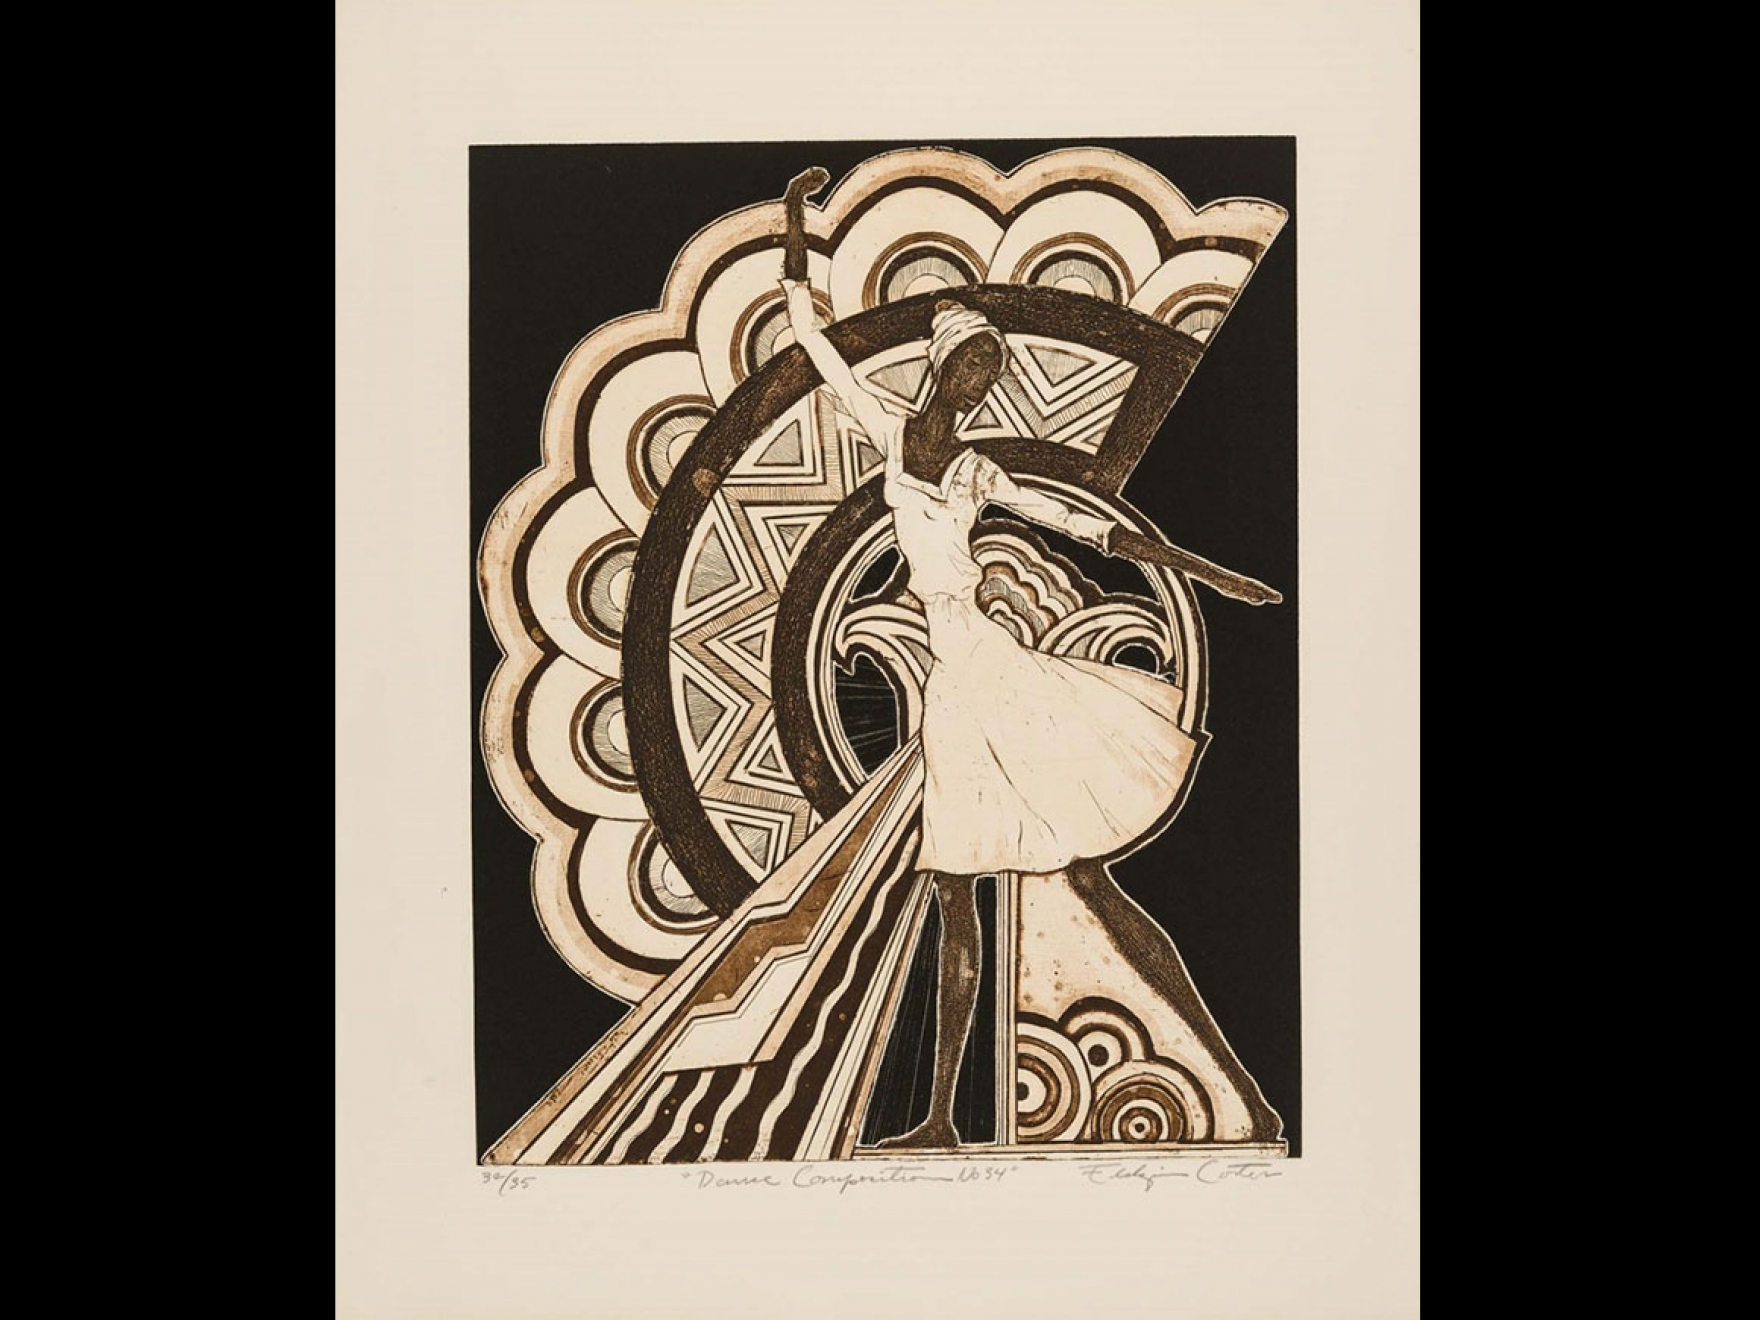 Eldzier Cortor's print, Dance Composition No. 34